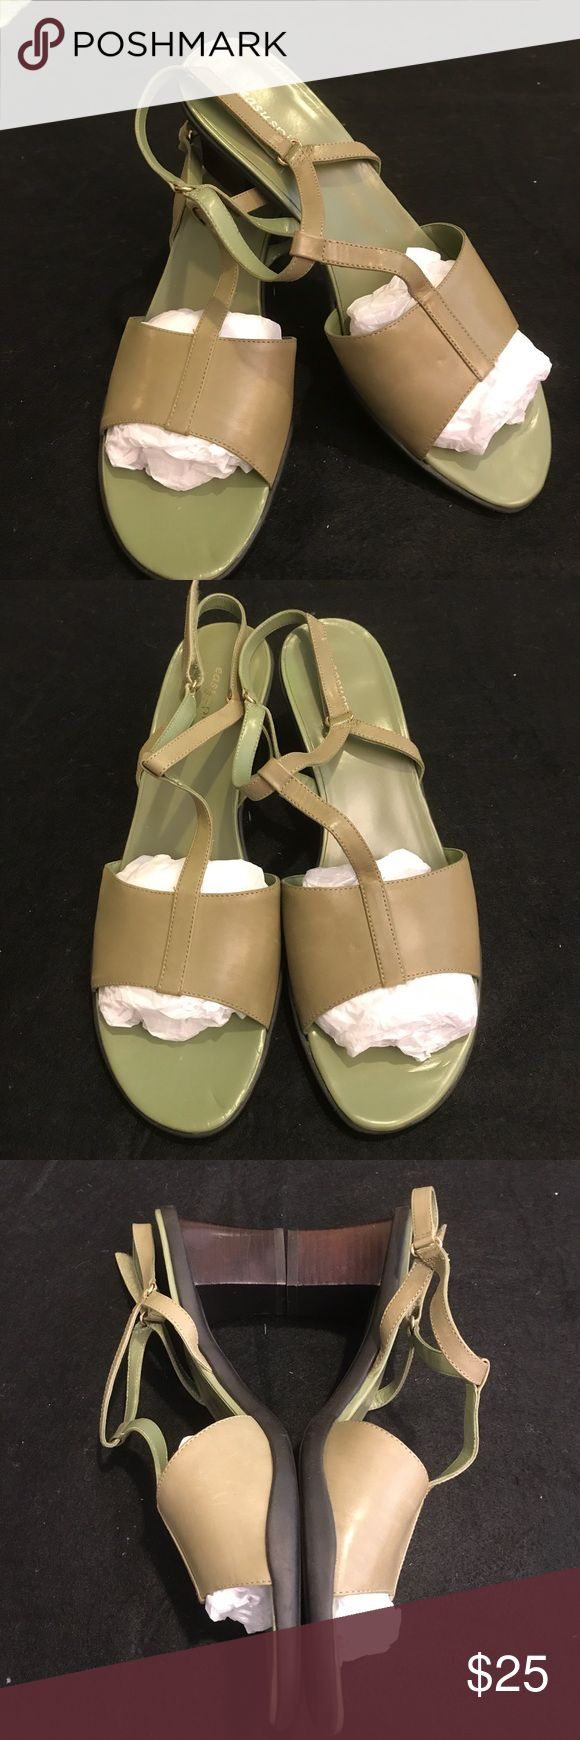 Easy Spirit Sandals (MWOT) NWOT- Easy Spirit Sandals. Never used. Very soft and comfortable. Heels 👠 height: 3', size: 10M Easy Spirit Shoes Sandals